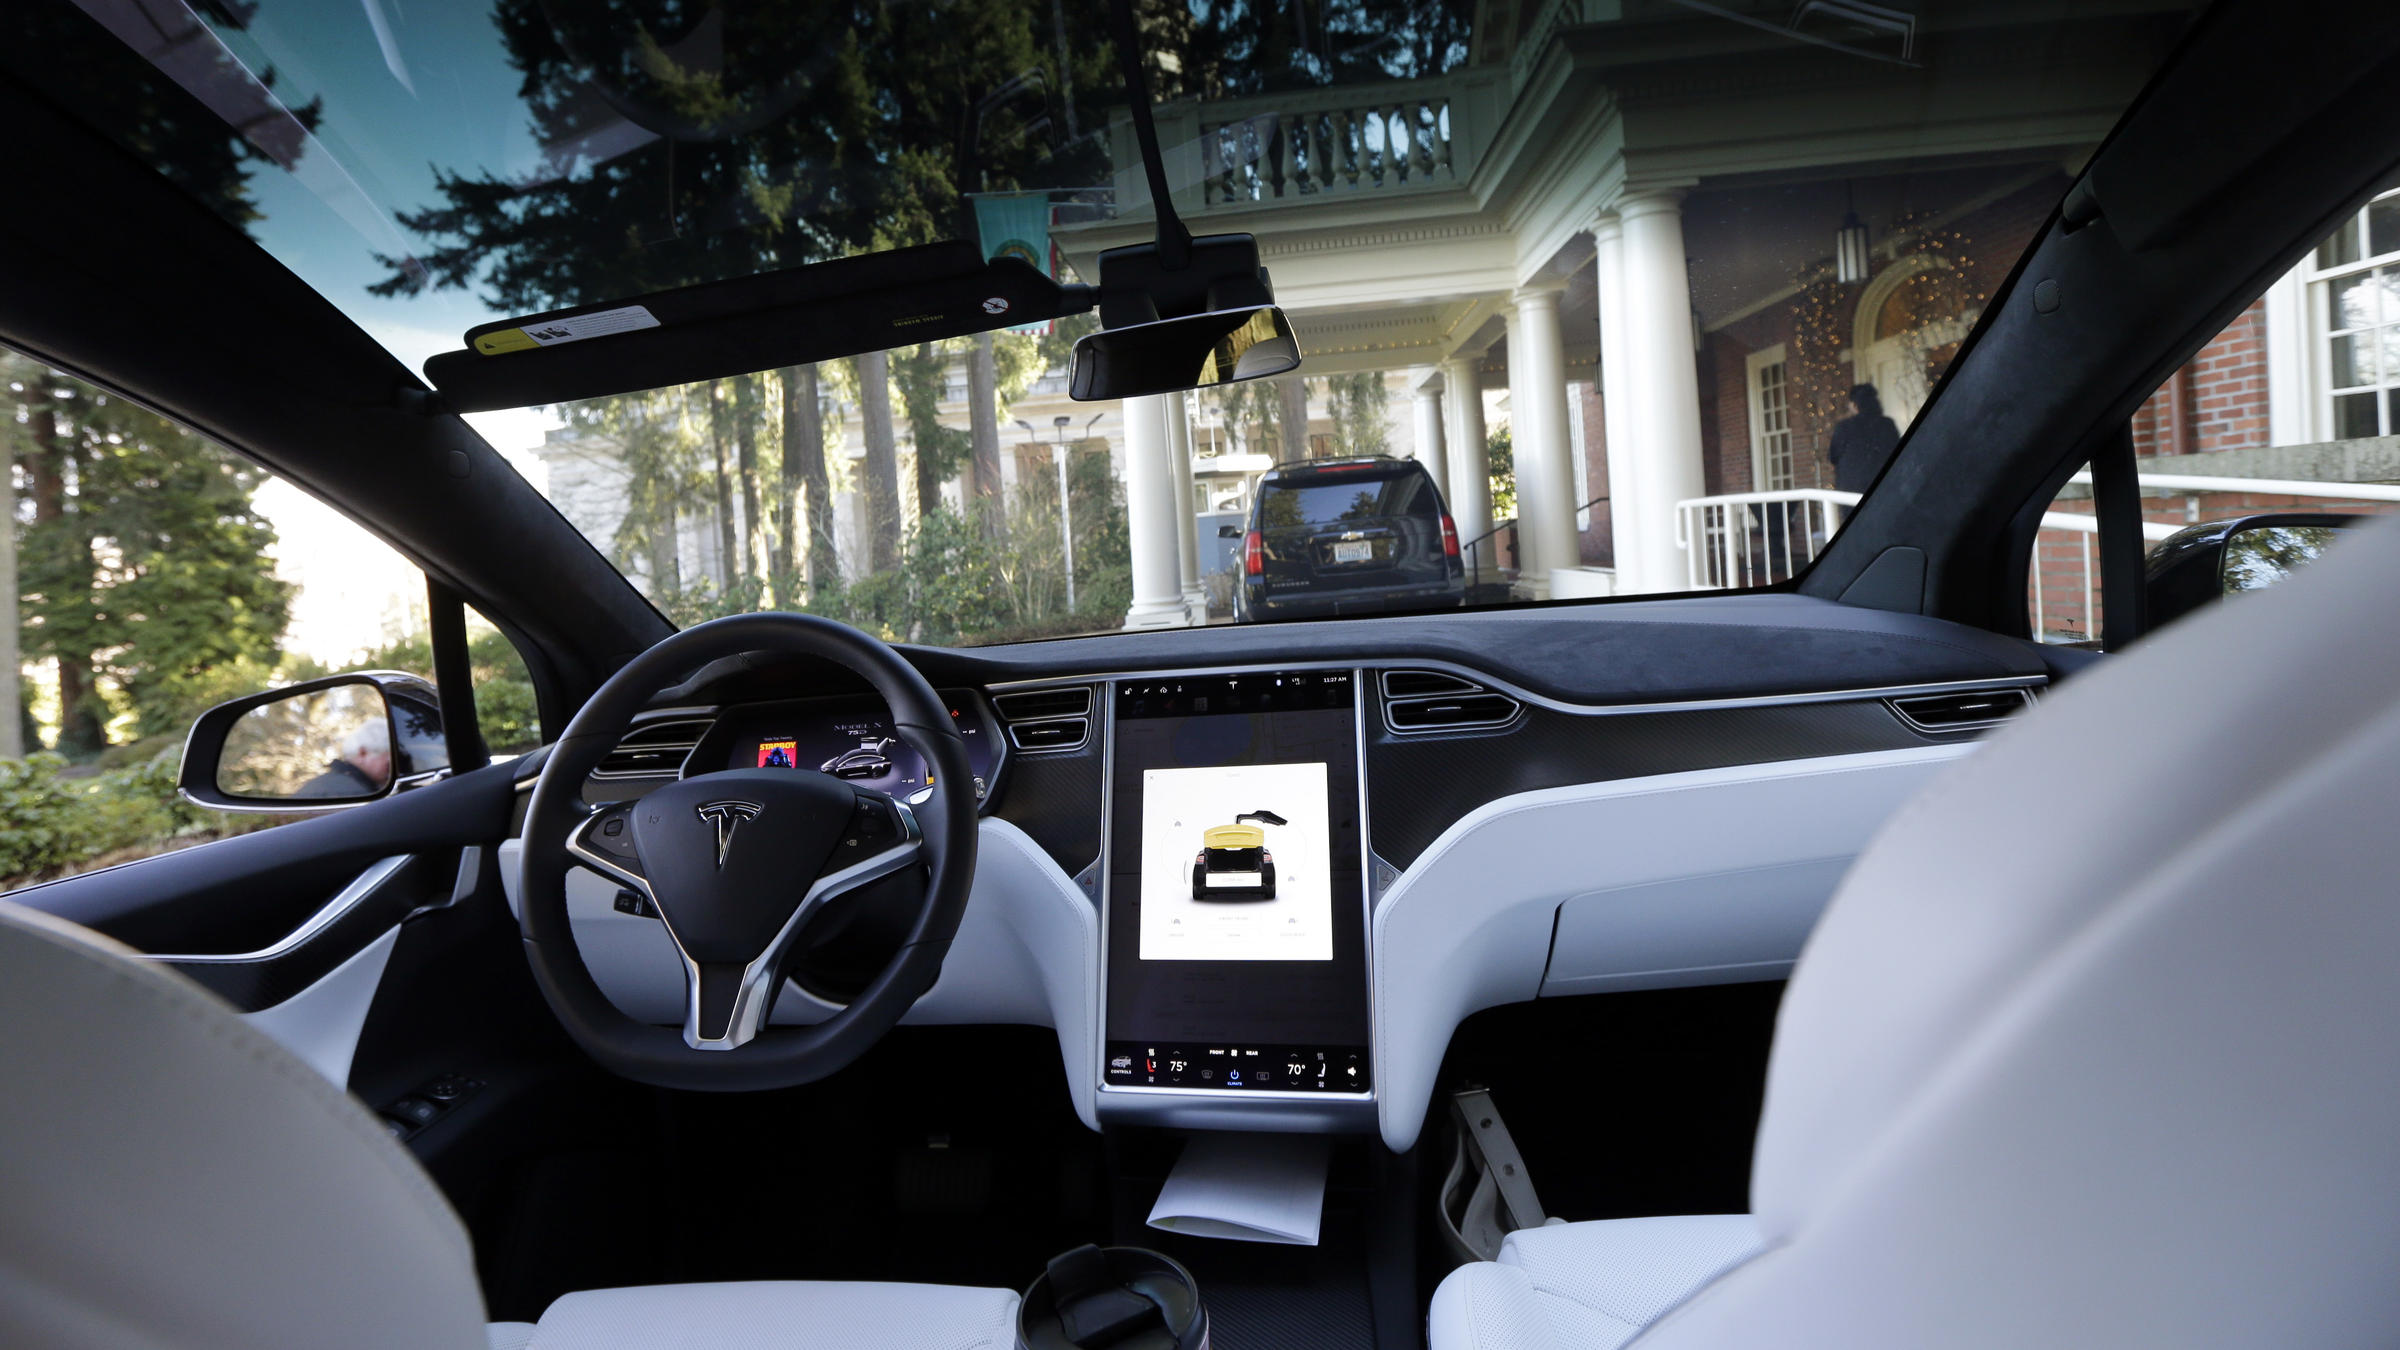 No Driver Input Detected In Seconds Before Deadly Tesla Crash